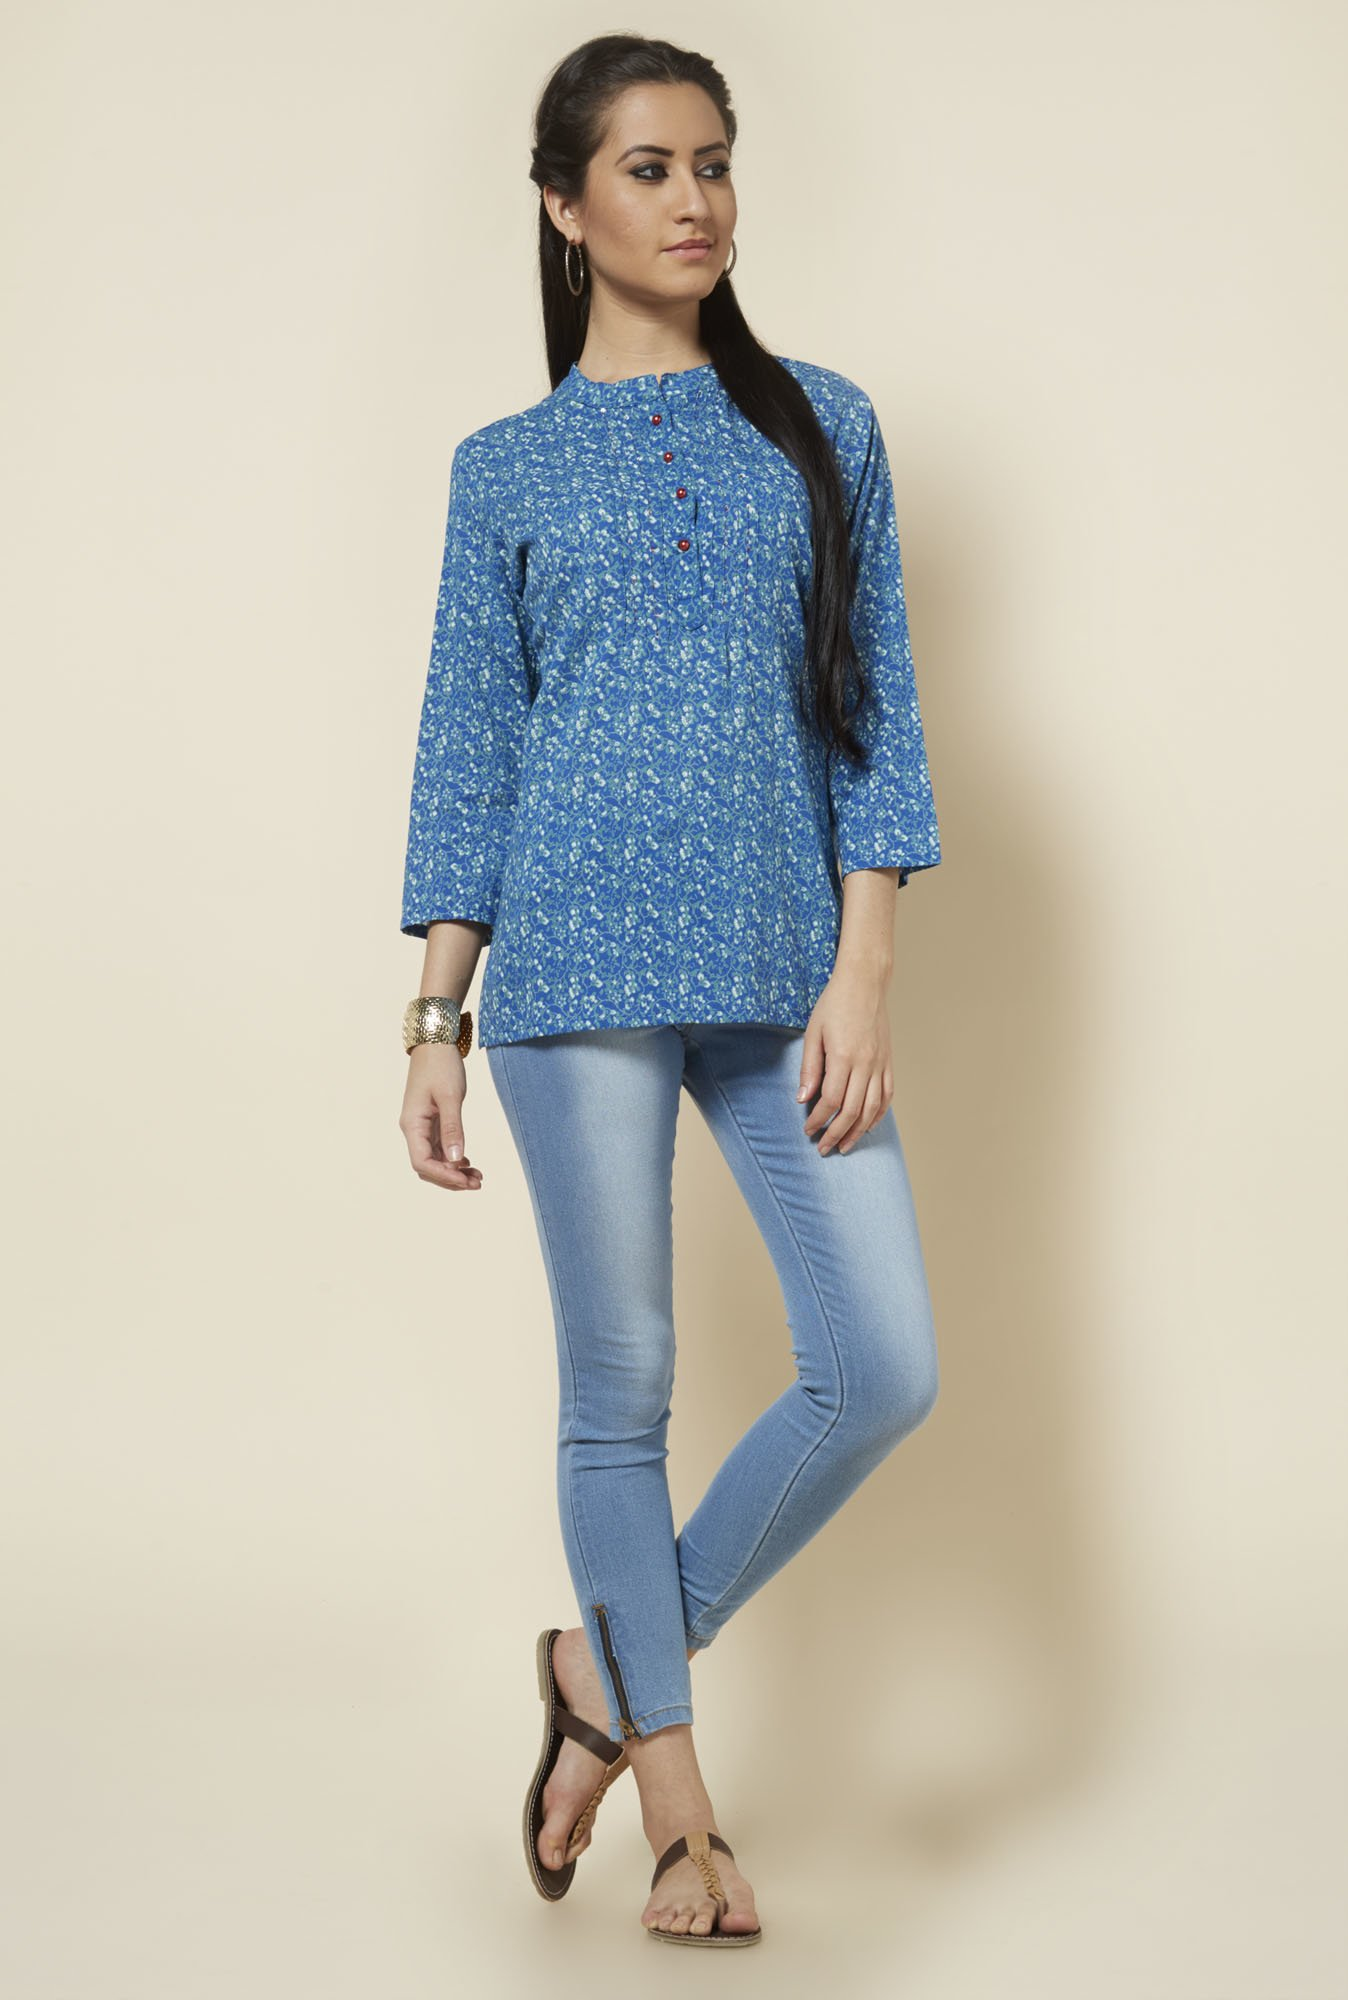 Zudio Blue Floral Block Printed Kurti